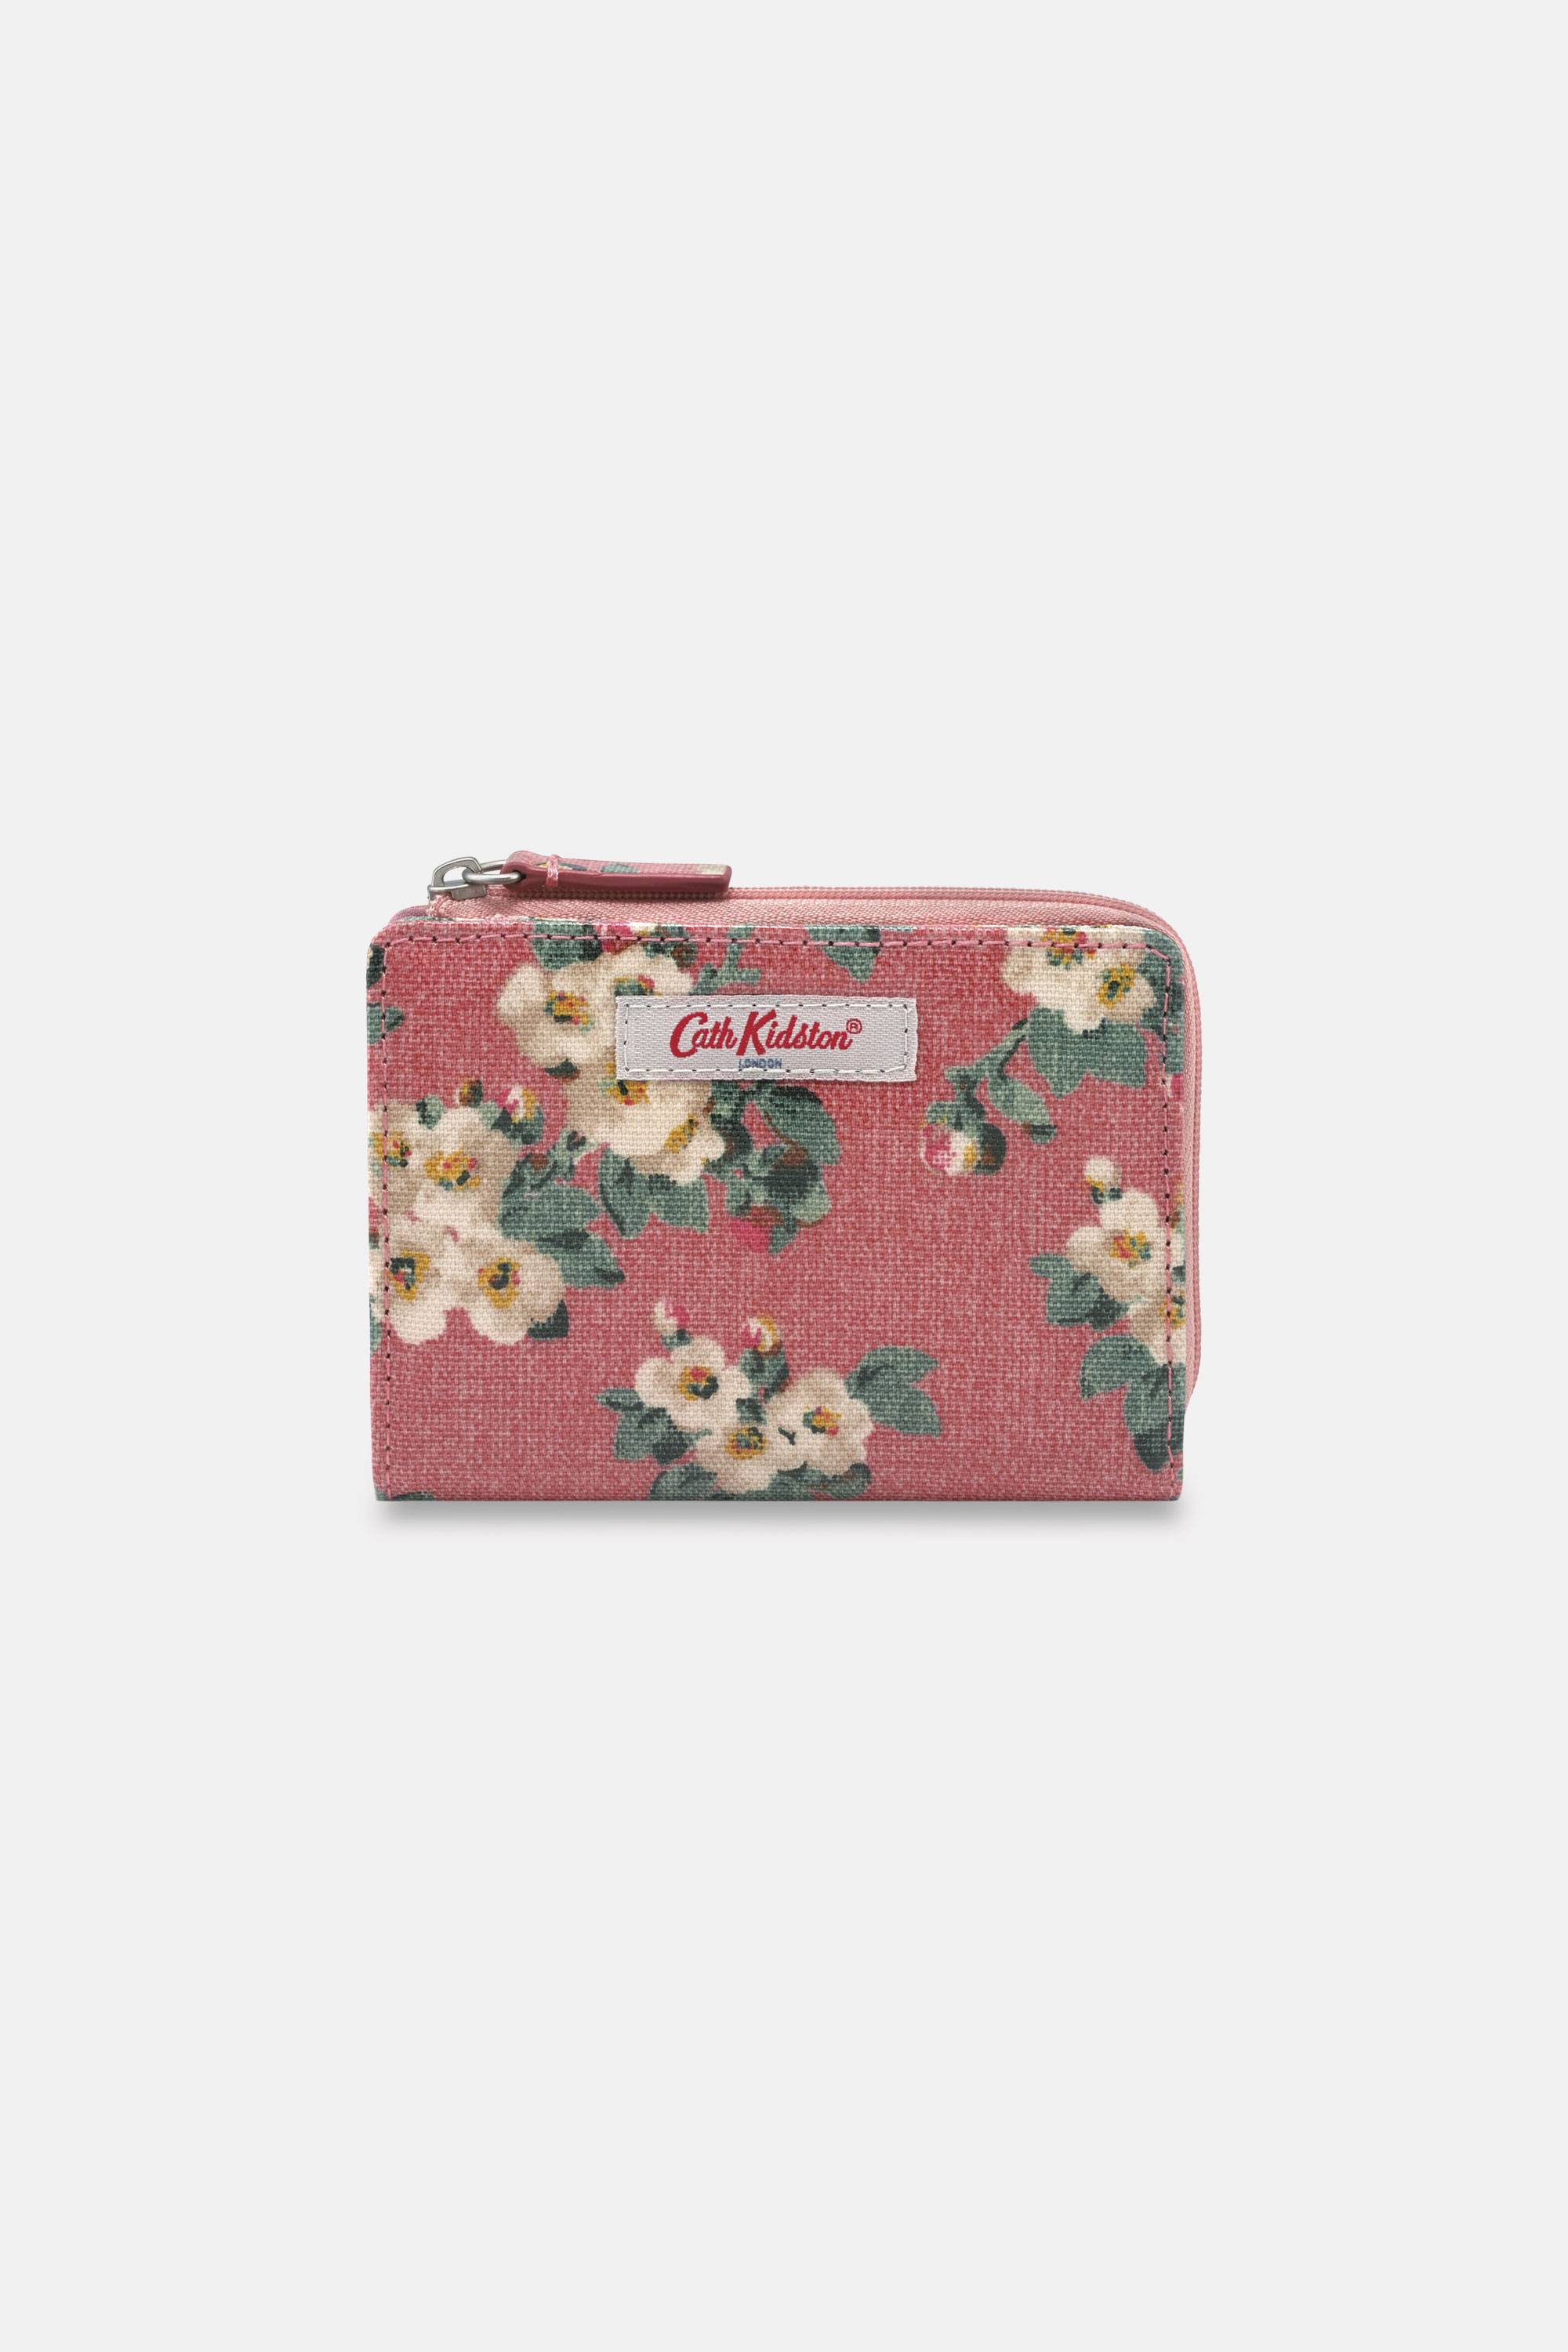 Cath Kidston Mayfield Blossom Slim Pocket Purse in Dusty Pink, 100% PVC Coated Cotton